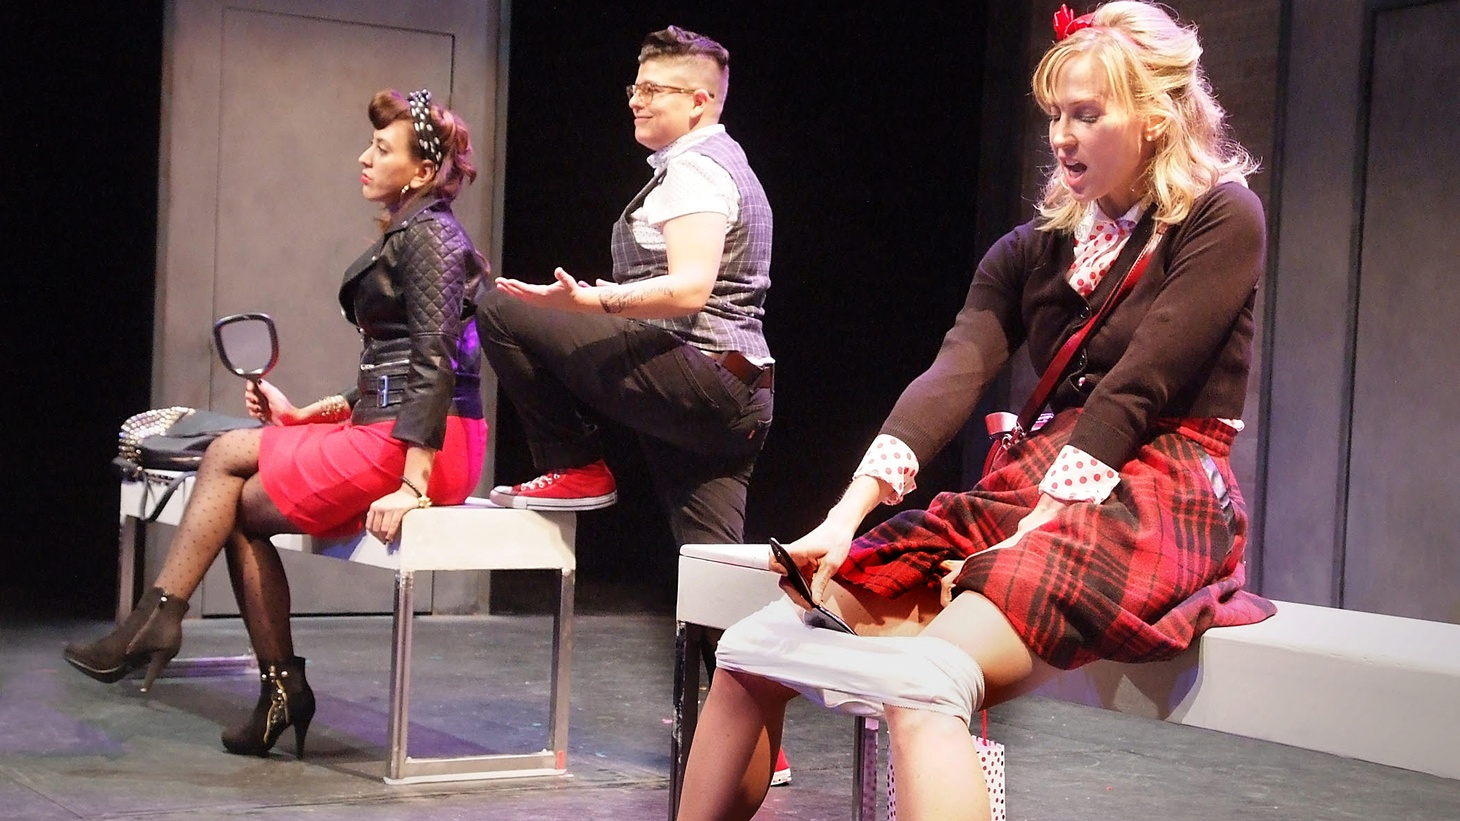 Collective Rage: A Play in Five Boopsshould be moving, political and empowering. Unfortunately, its style gets in the way.